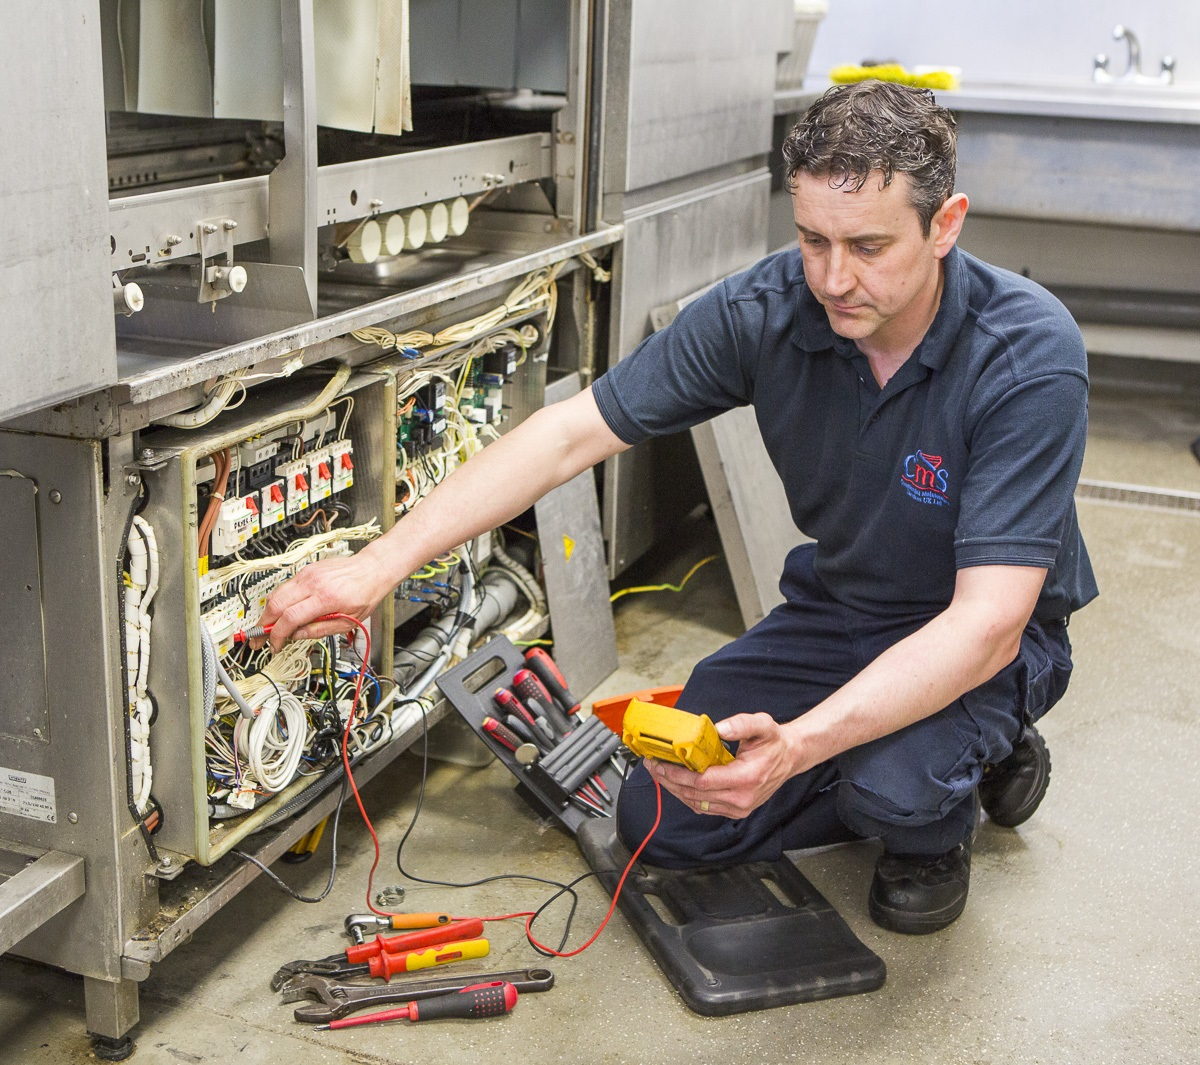 Commercial catering equipment maintenance